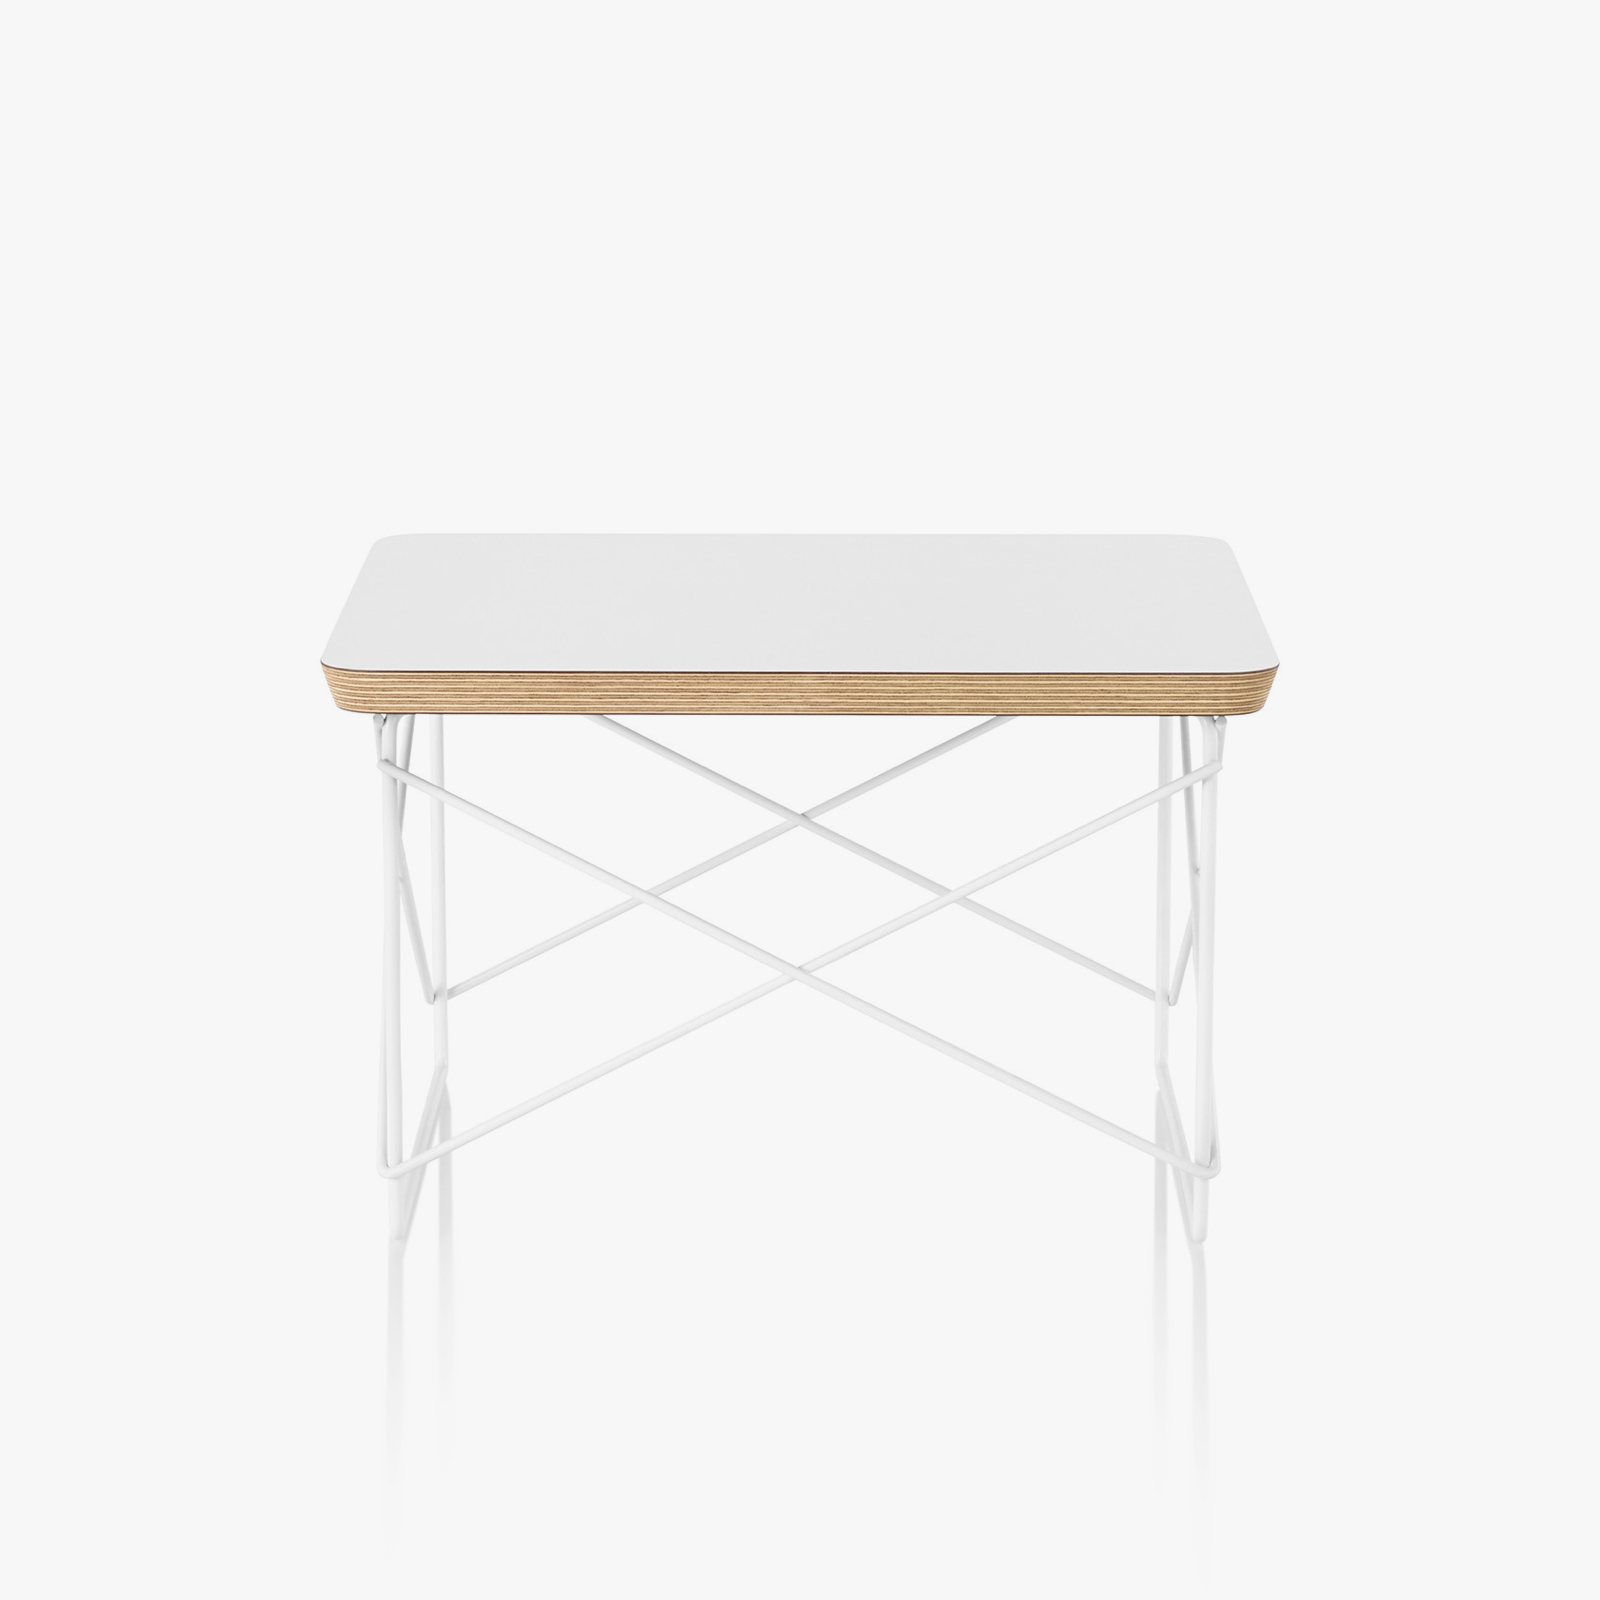 Eames wire base low table by charles ray eames for herman miller eames wire base low table white top with white base greentooth Gallery